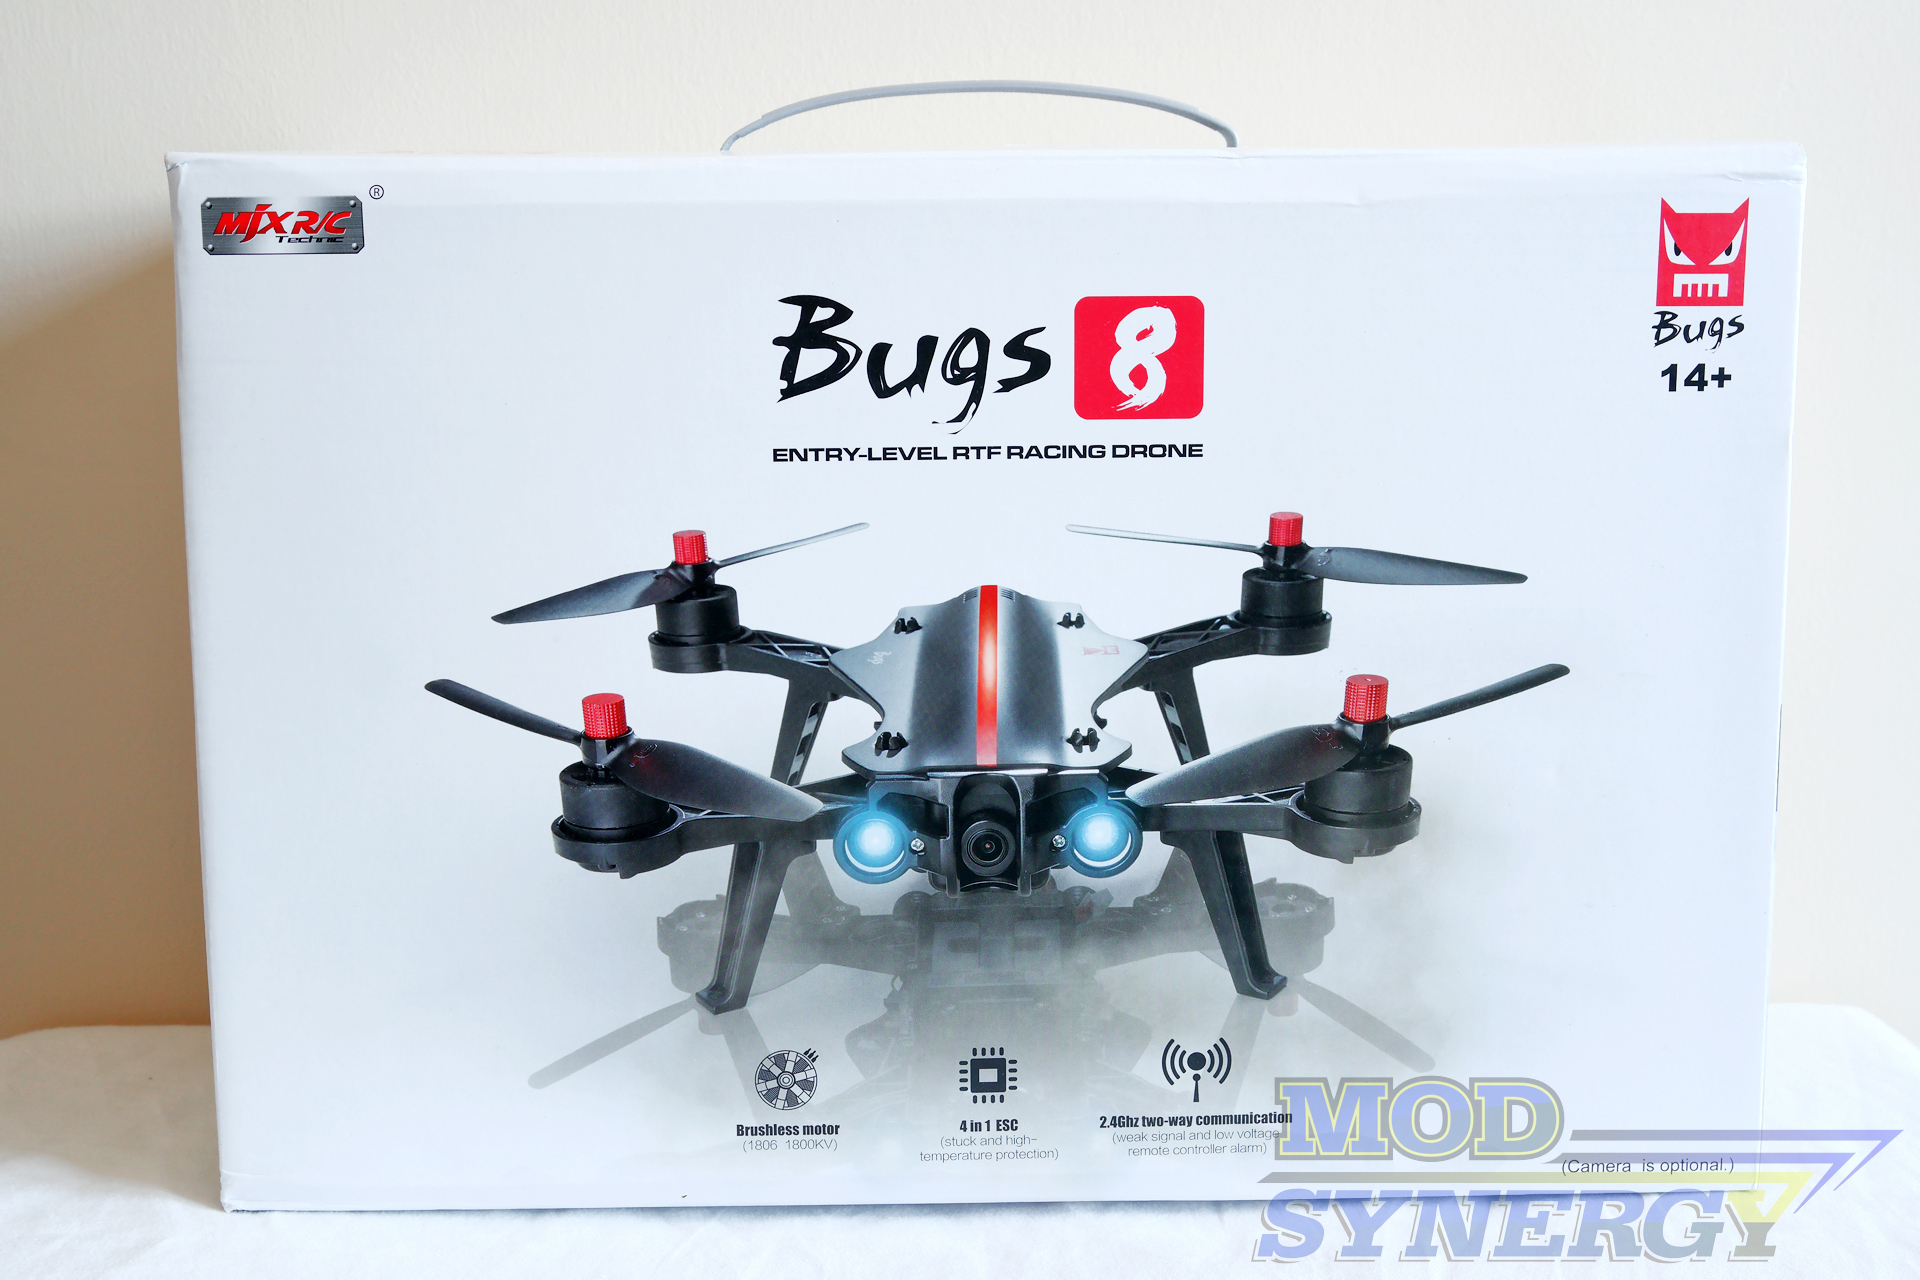 The MJX Bugs 8 250mm FPV Brushless Racing Drone Comes Packaged In A Visually Appealing Corrugated Box With Design Similar To 3 However